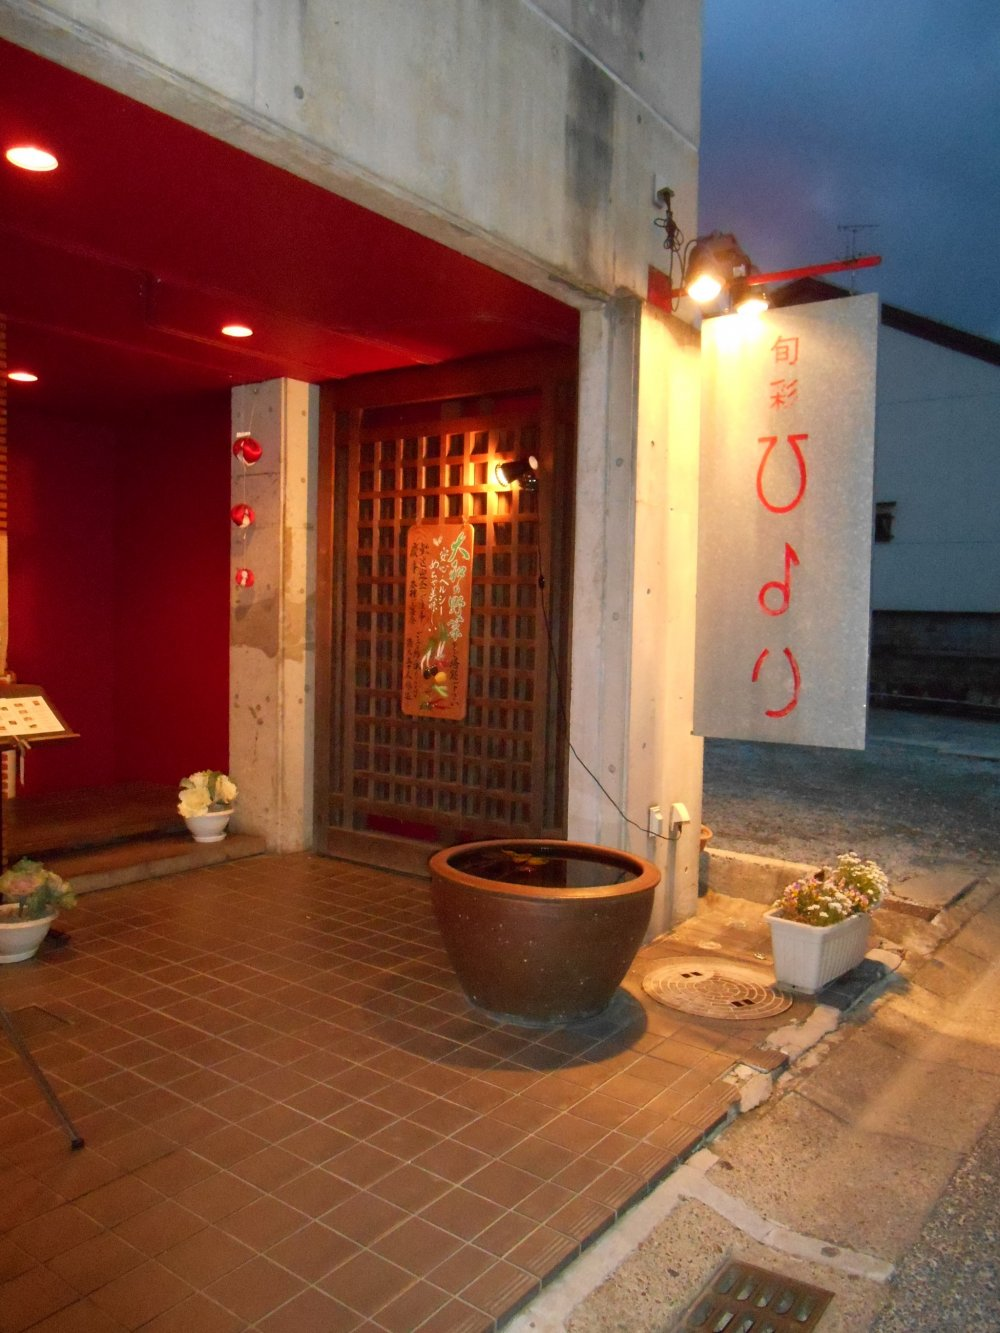 The entrance to Hiyori restaurant